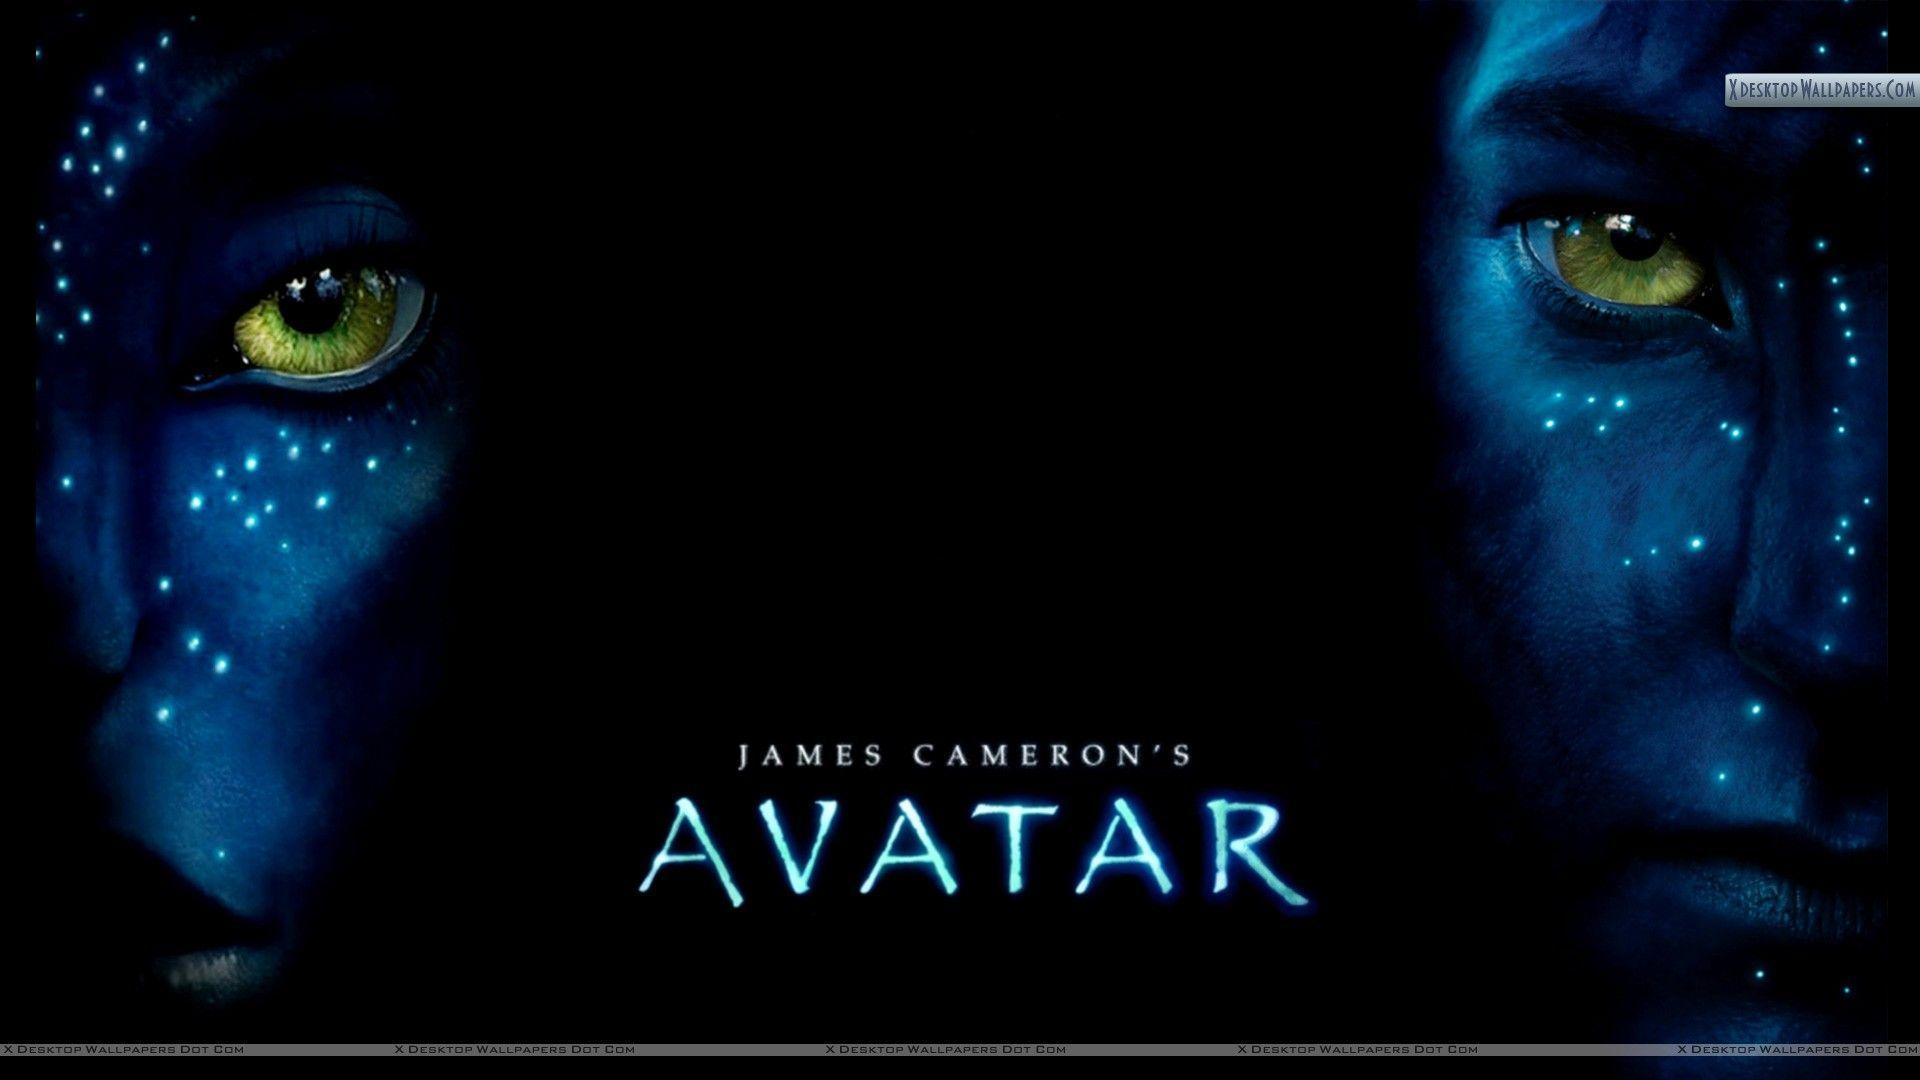 Avatar Movie Poster Wallpapers